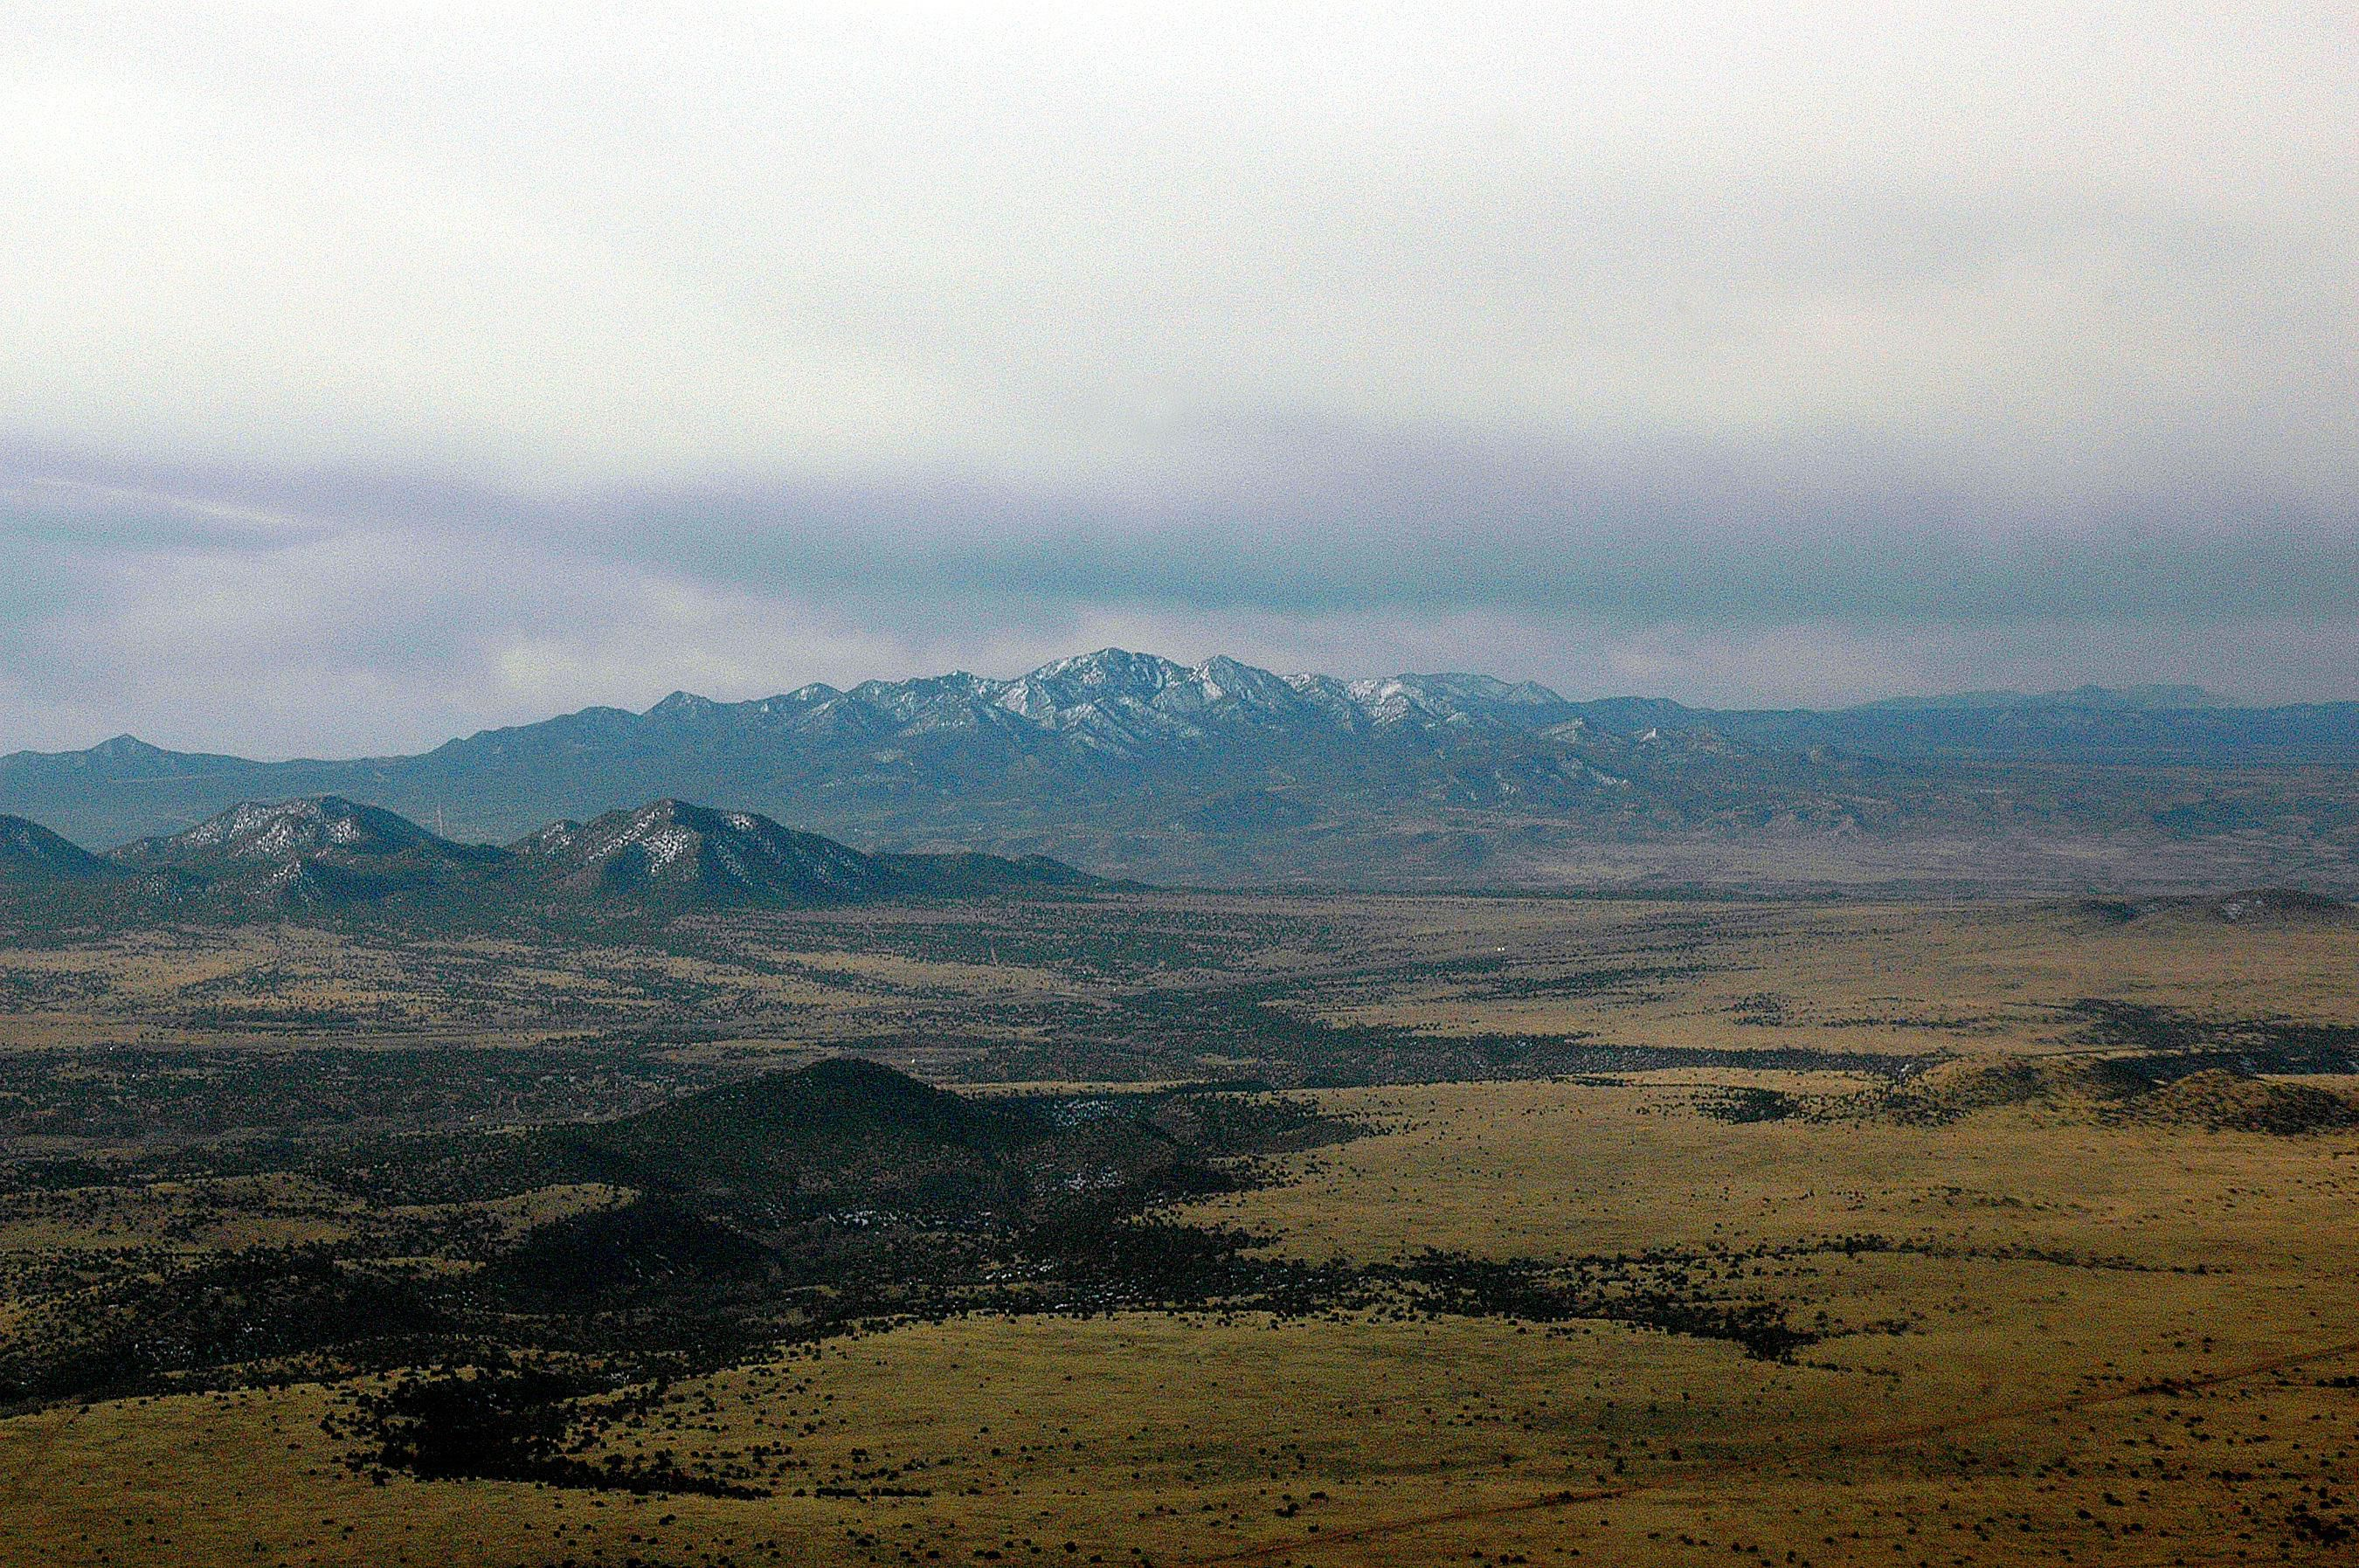 Eastern slope of the Sandia Mountains